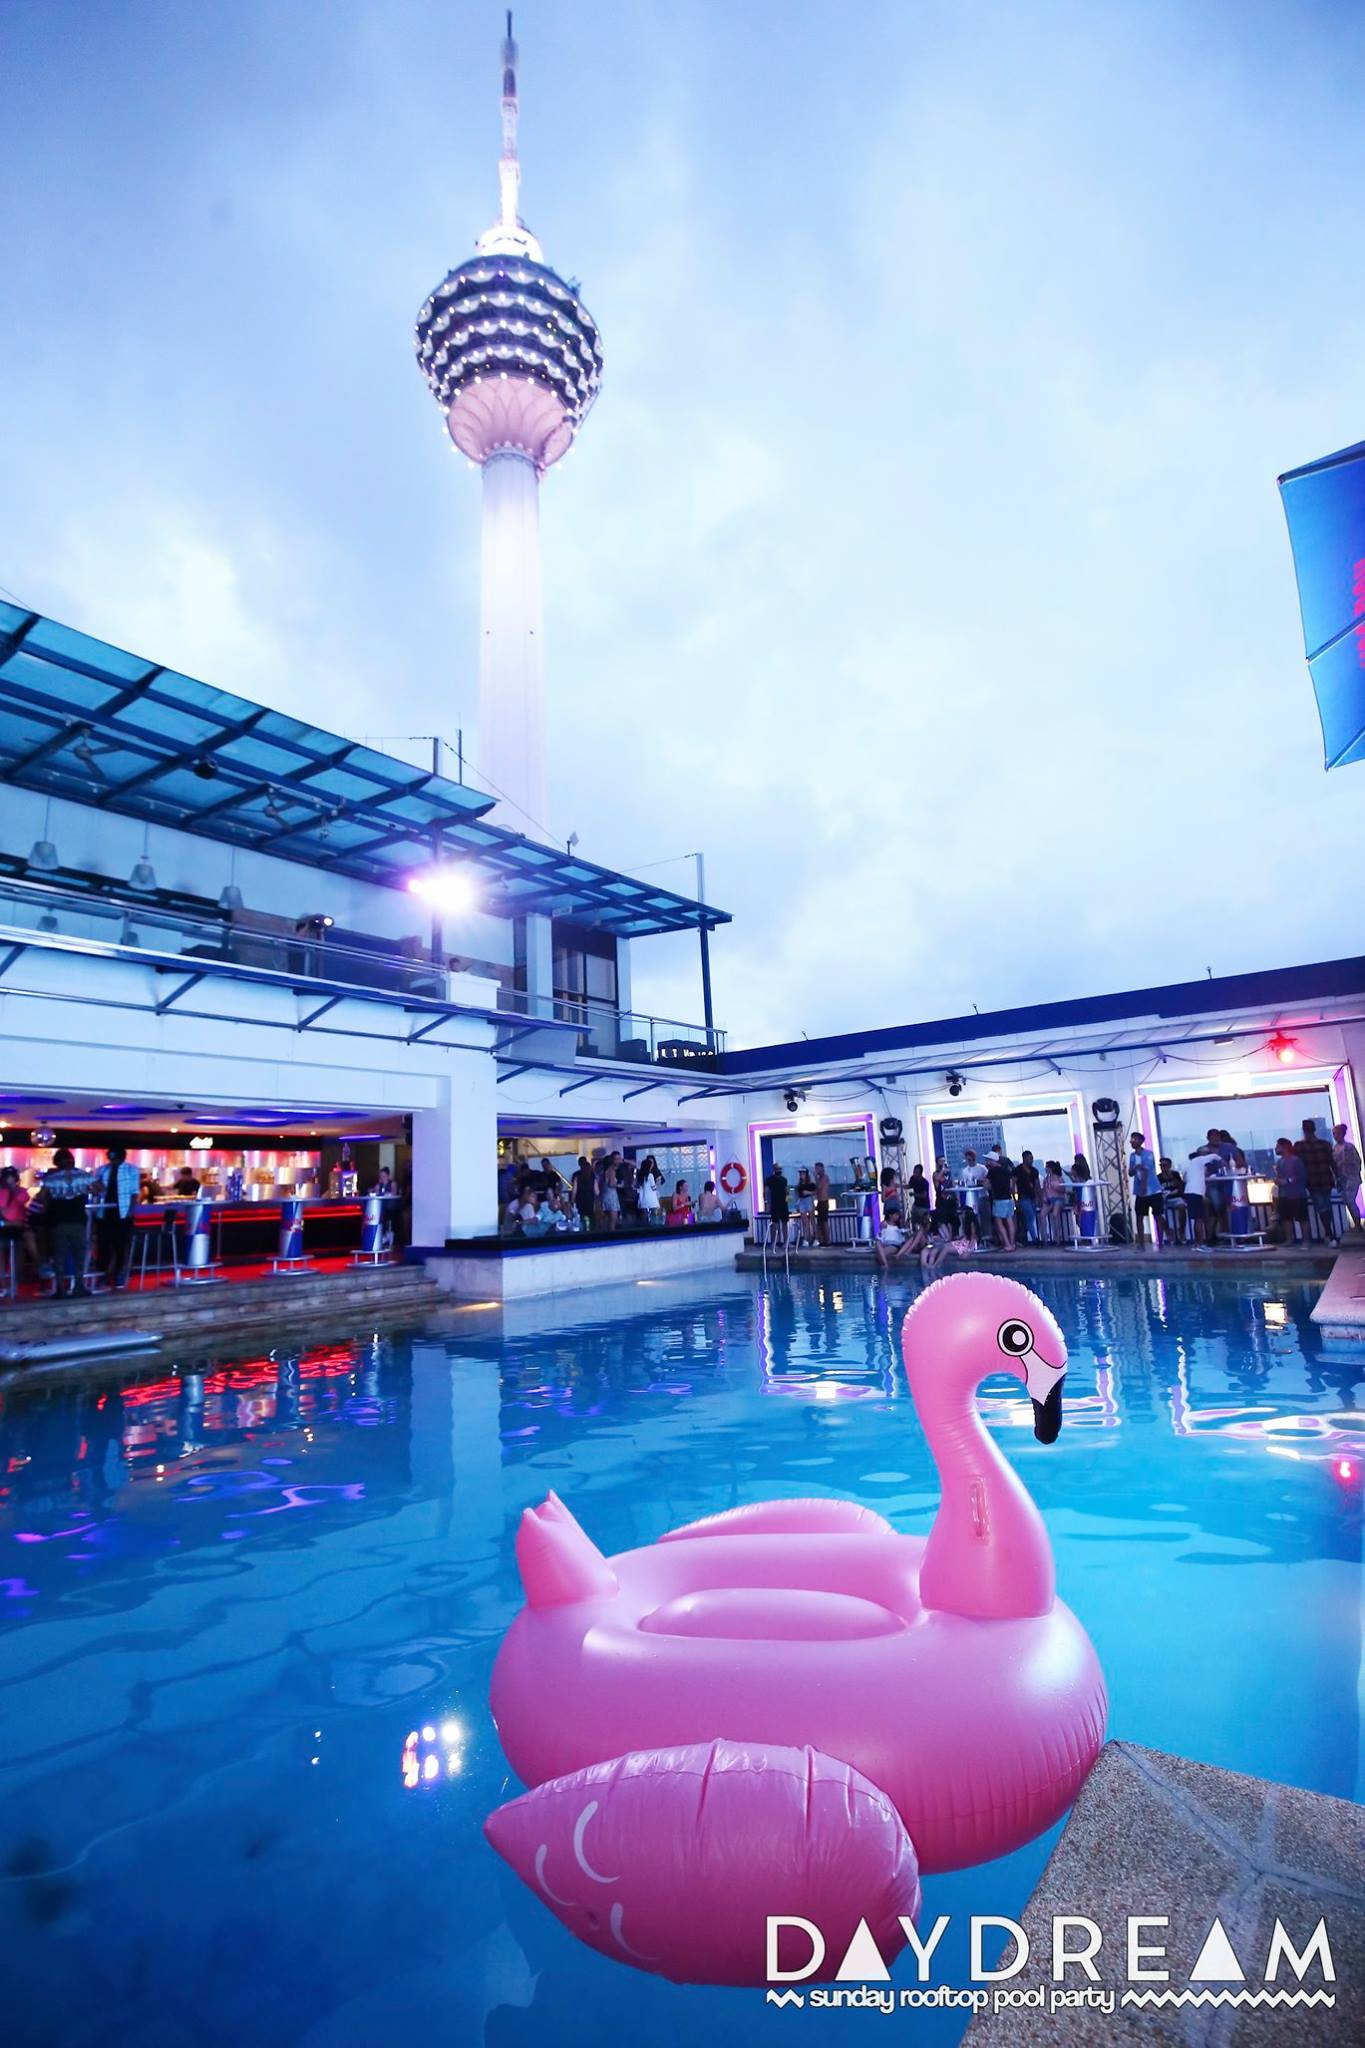 Day Dream Pool Party in KL